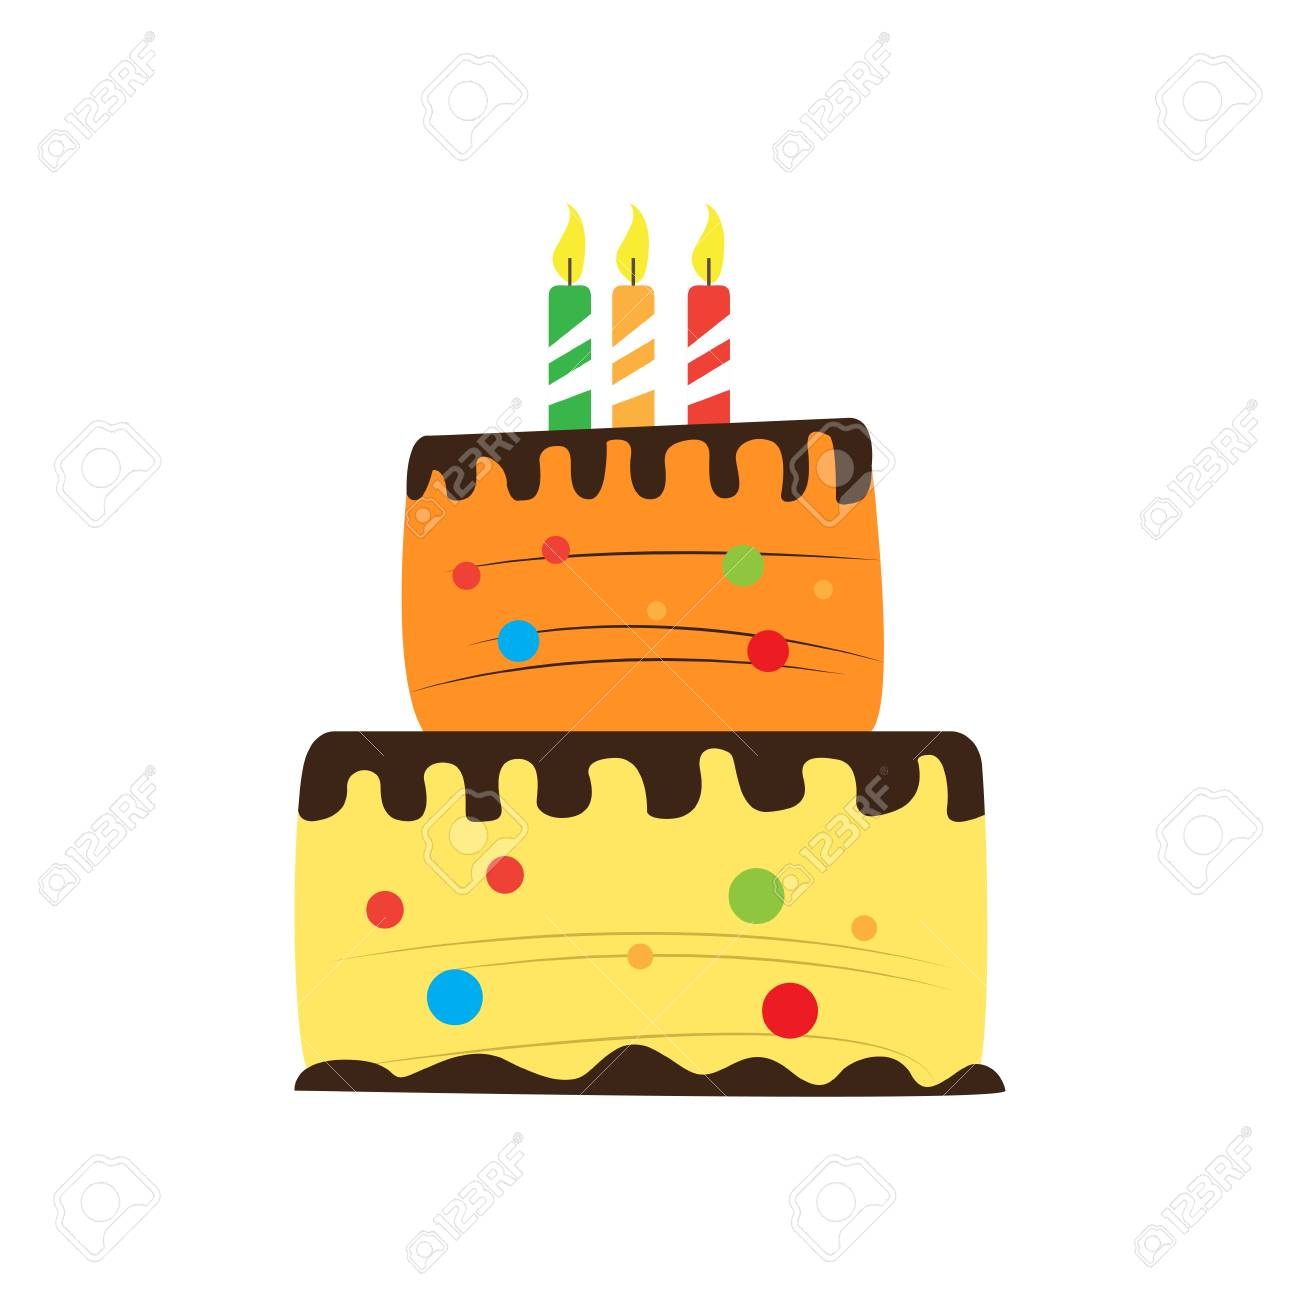 Birthday Cake Icon Royalty Free Cliparts Vectors And Stock